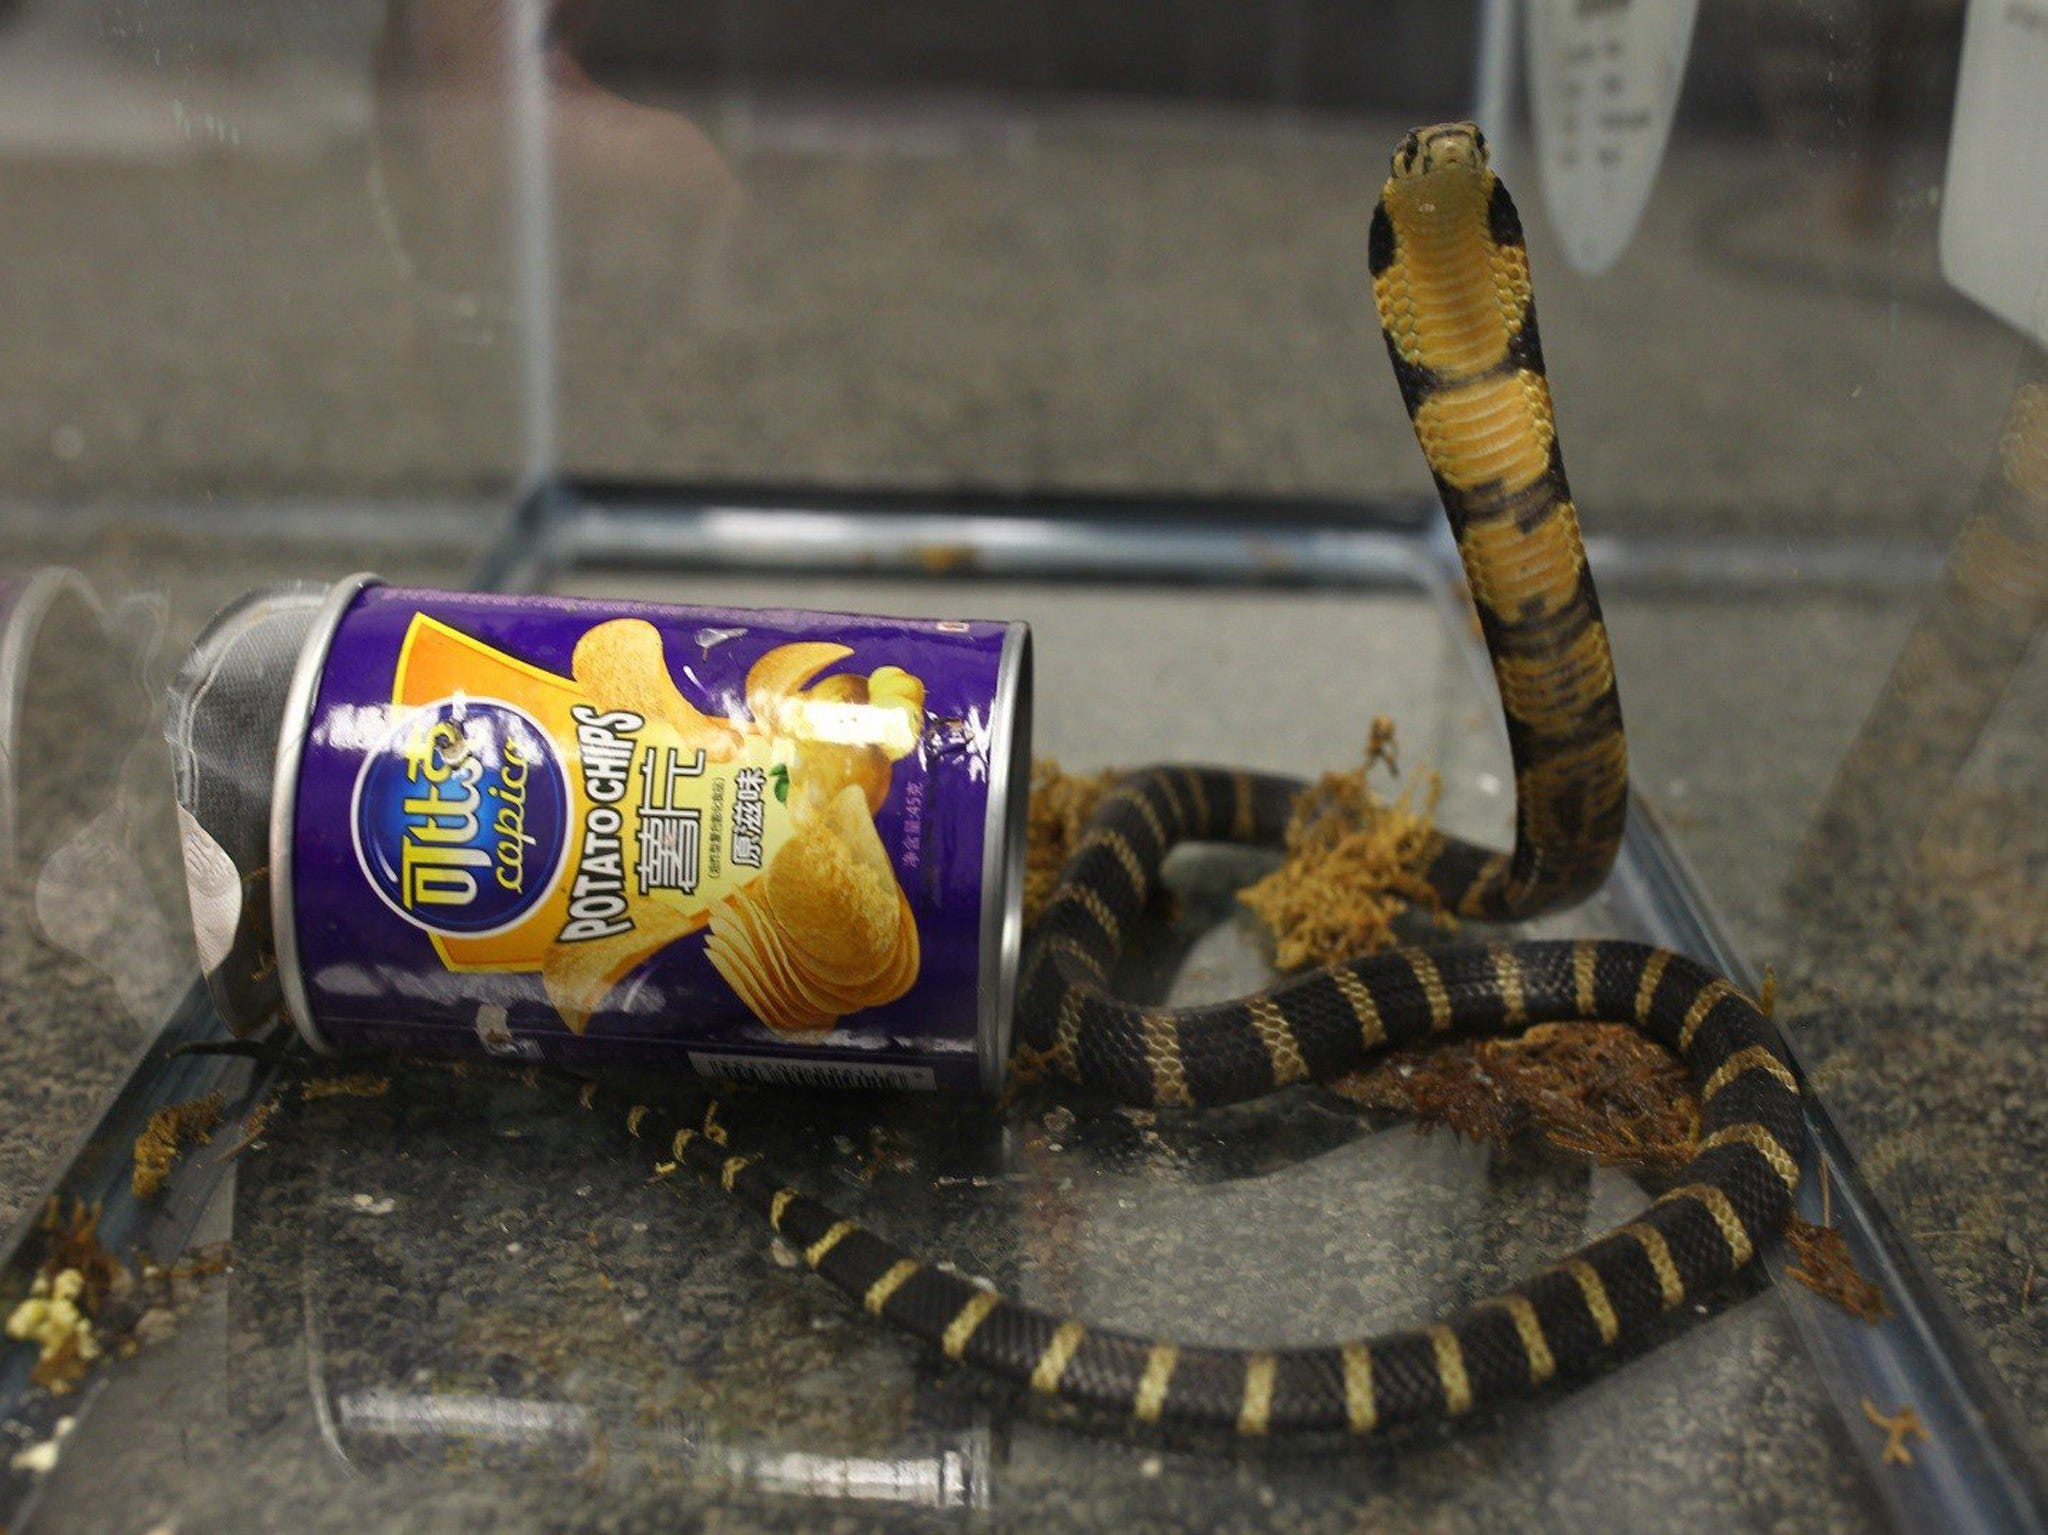 King cobras coiled in potato chip cans lead authorities to tanks of illegal reptiles in California